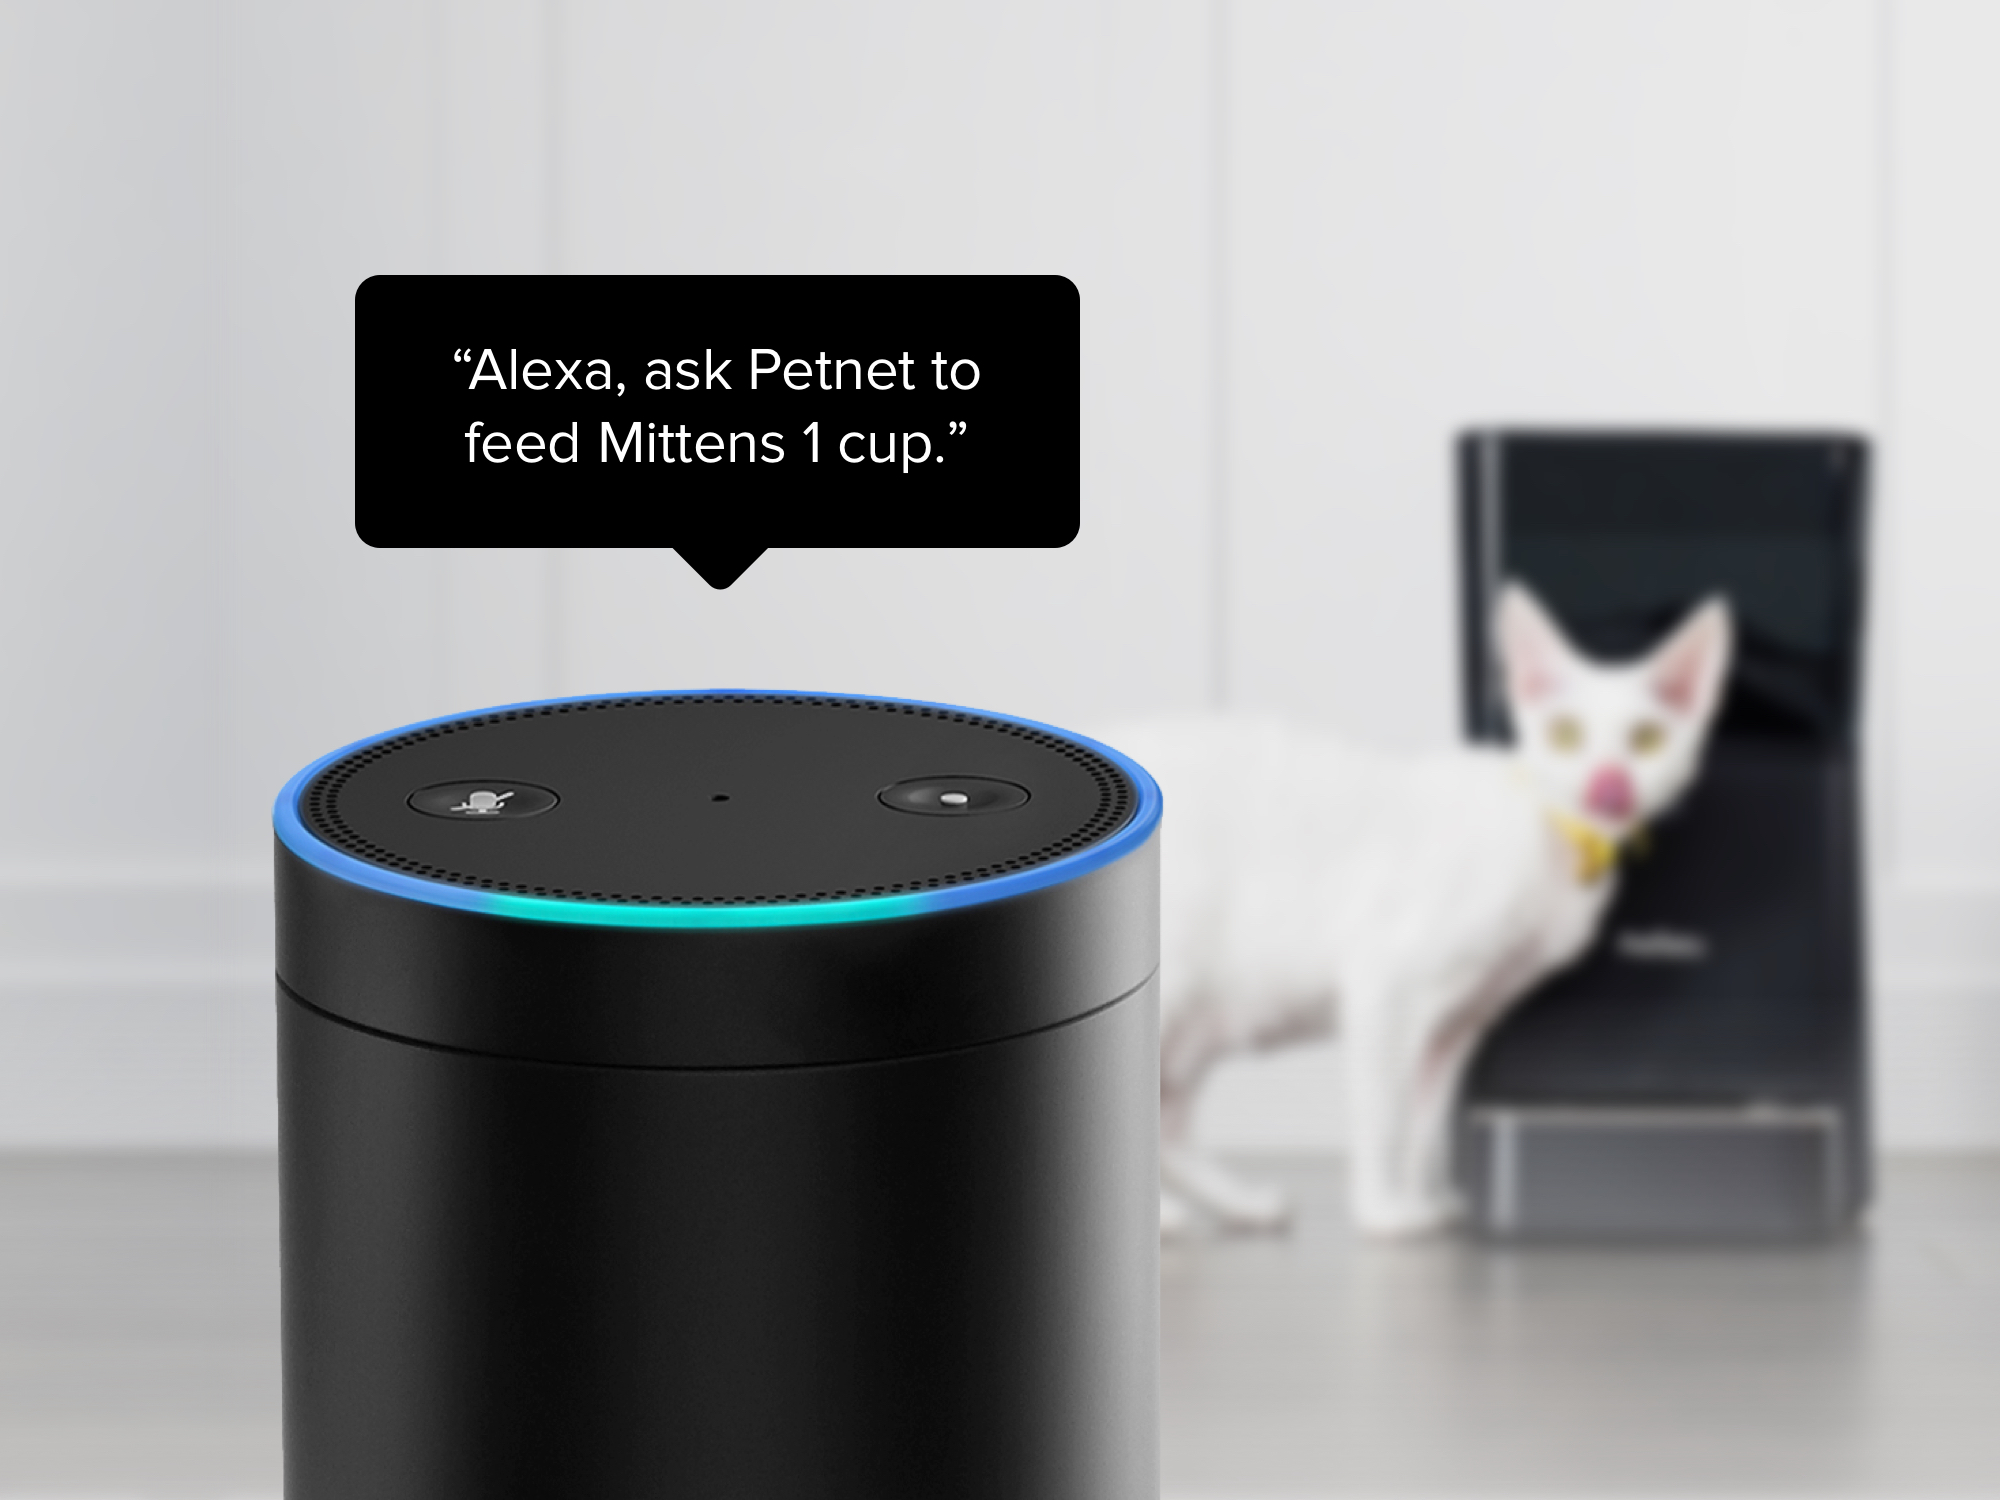 Microsoft shows Cortana and Alexa working together in Build demo